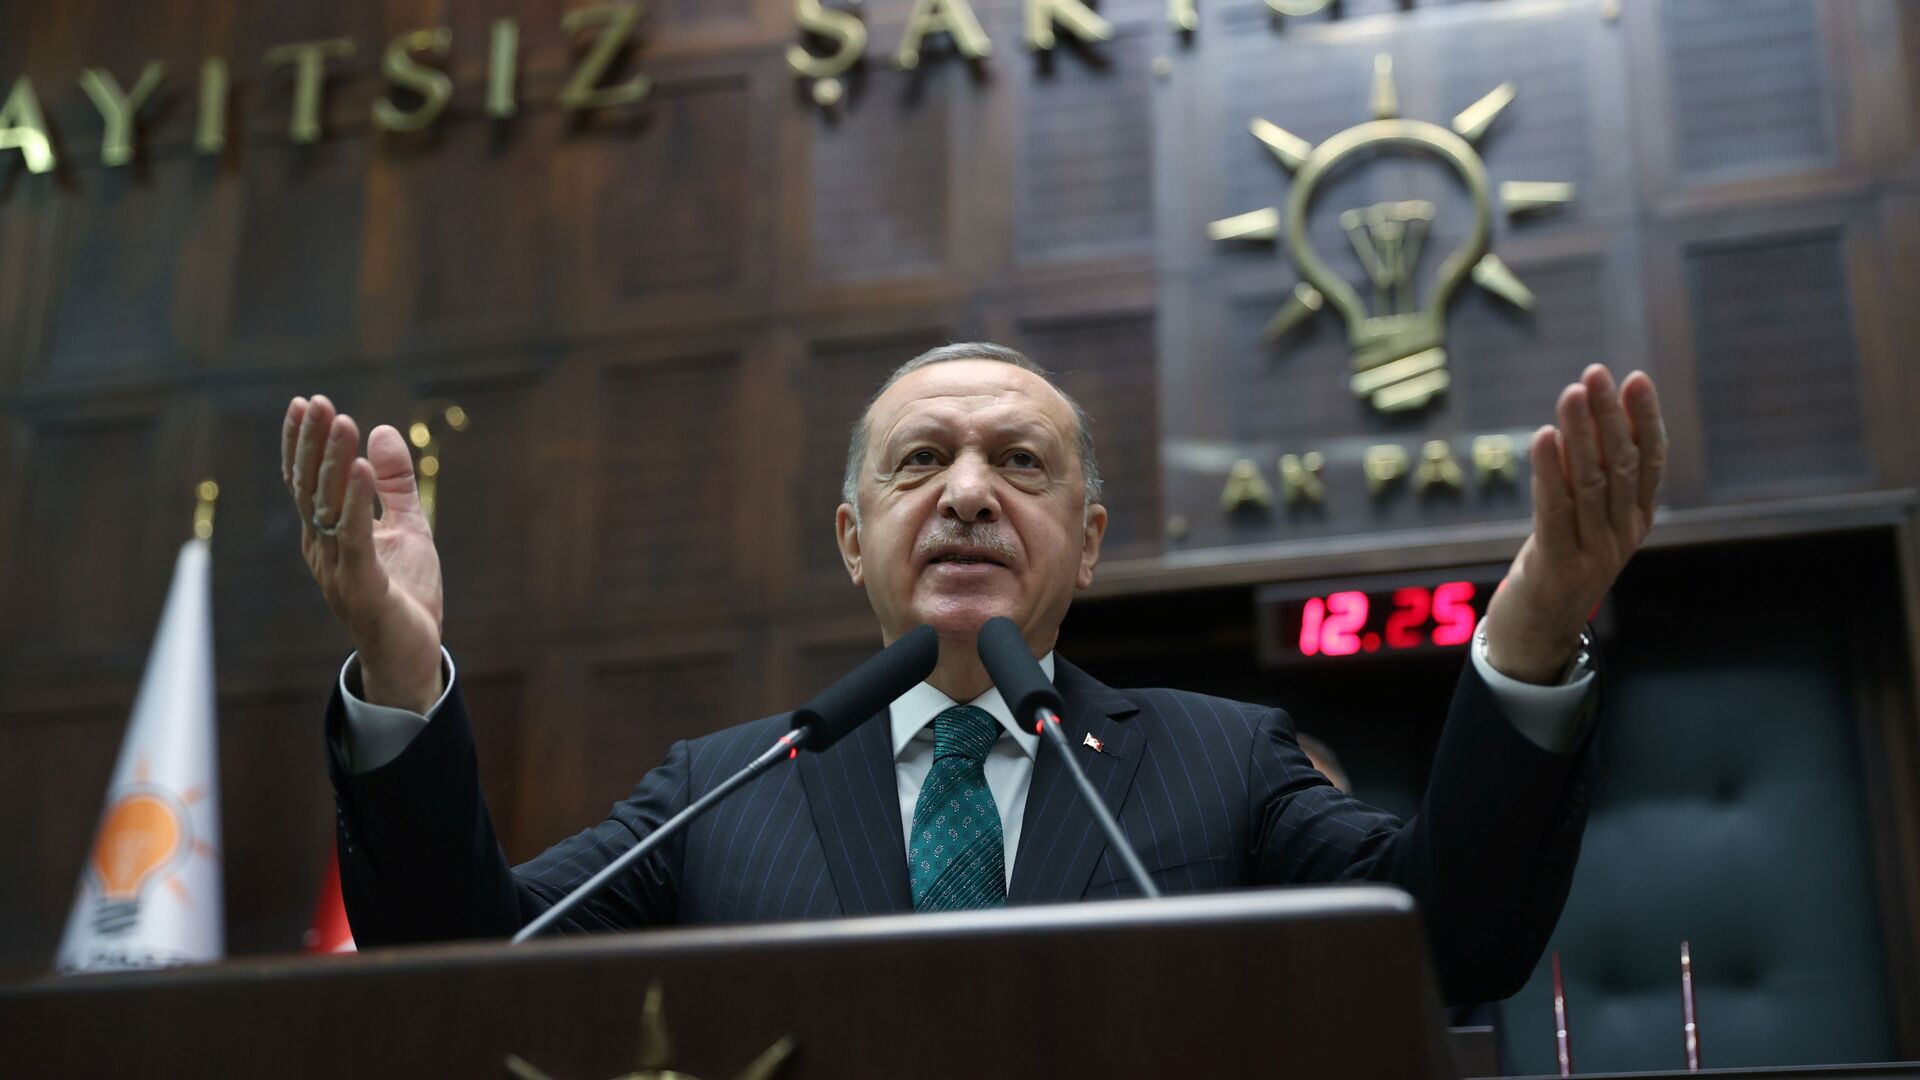 Turkish President Tayyip Erdogan addresses members of parliament from his ruling AK Party (AKP) during a meeting at the Turkish parliament in Ankara, Turkey, February 10, 2021 - Sputnik Italia, 1920, 15.02.2021